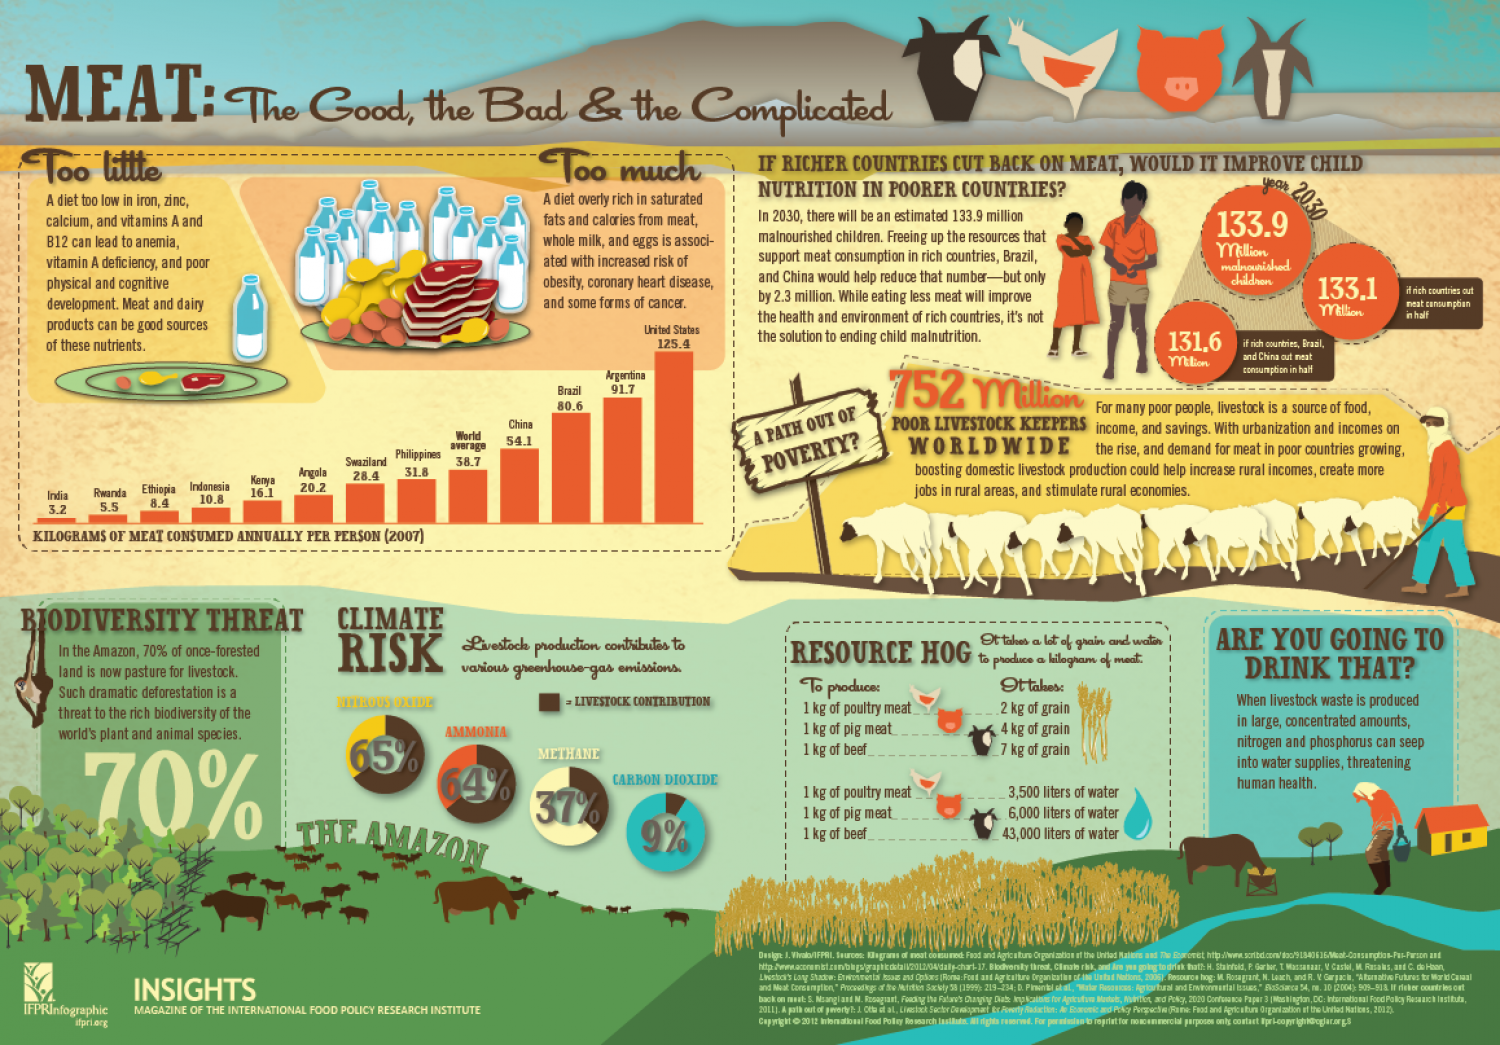 Meat: The Good, the Bad & the Complicated Infographic